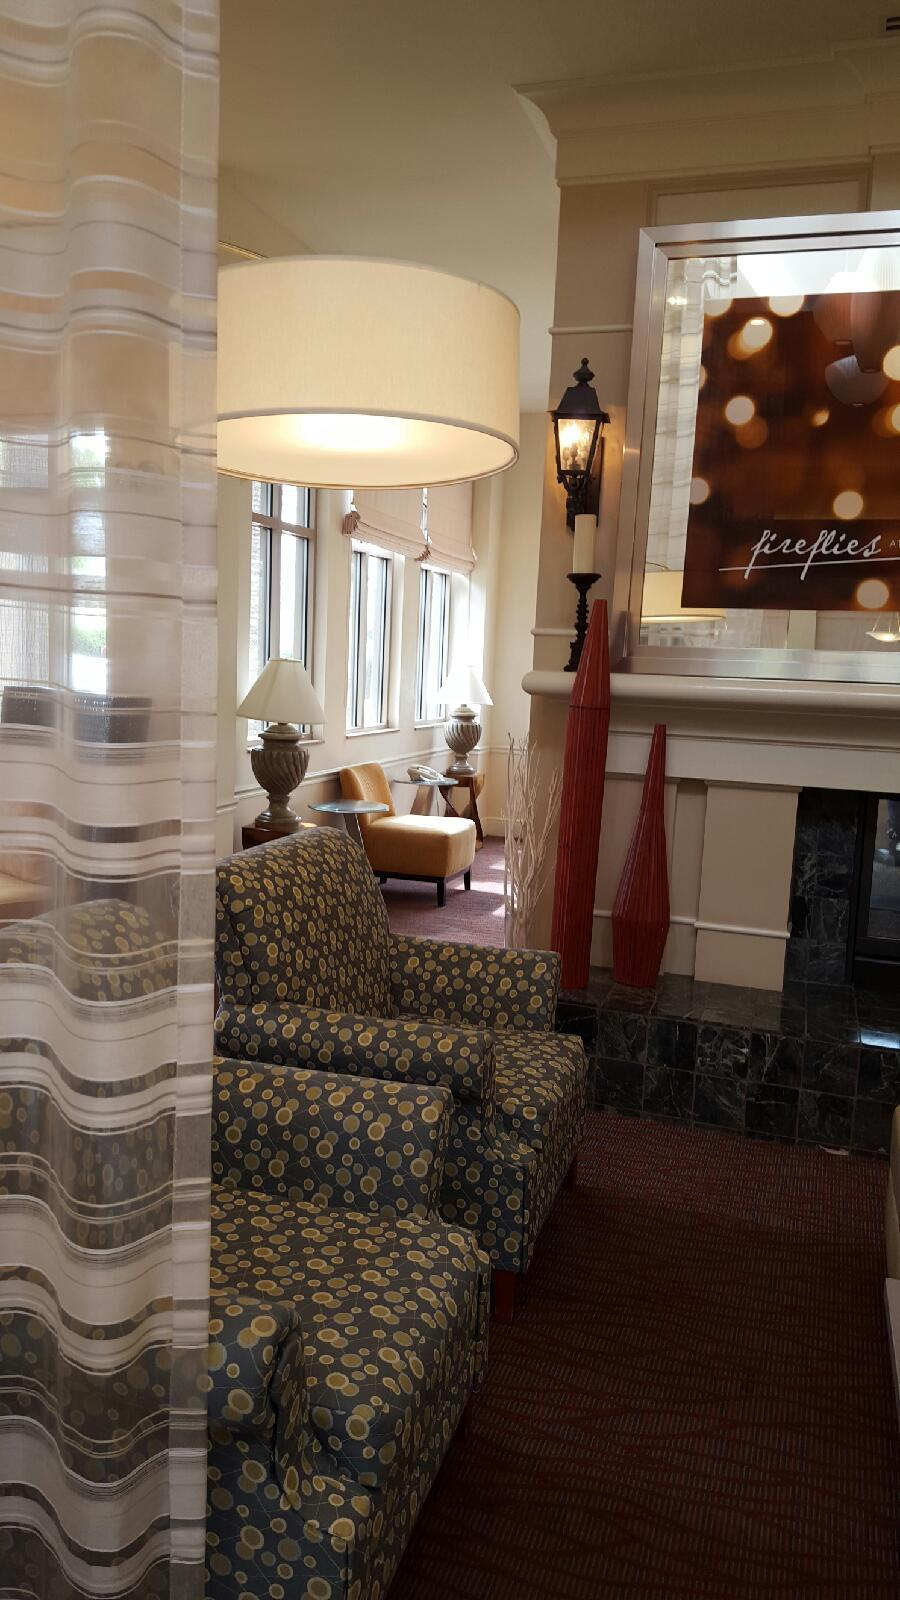 Comfy chairs in the lobby